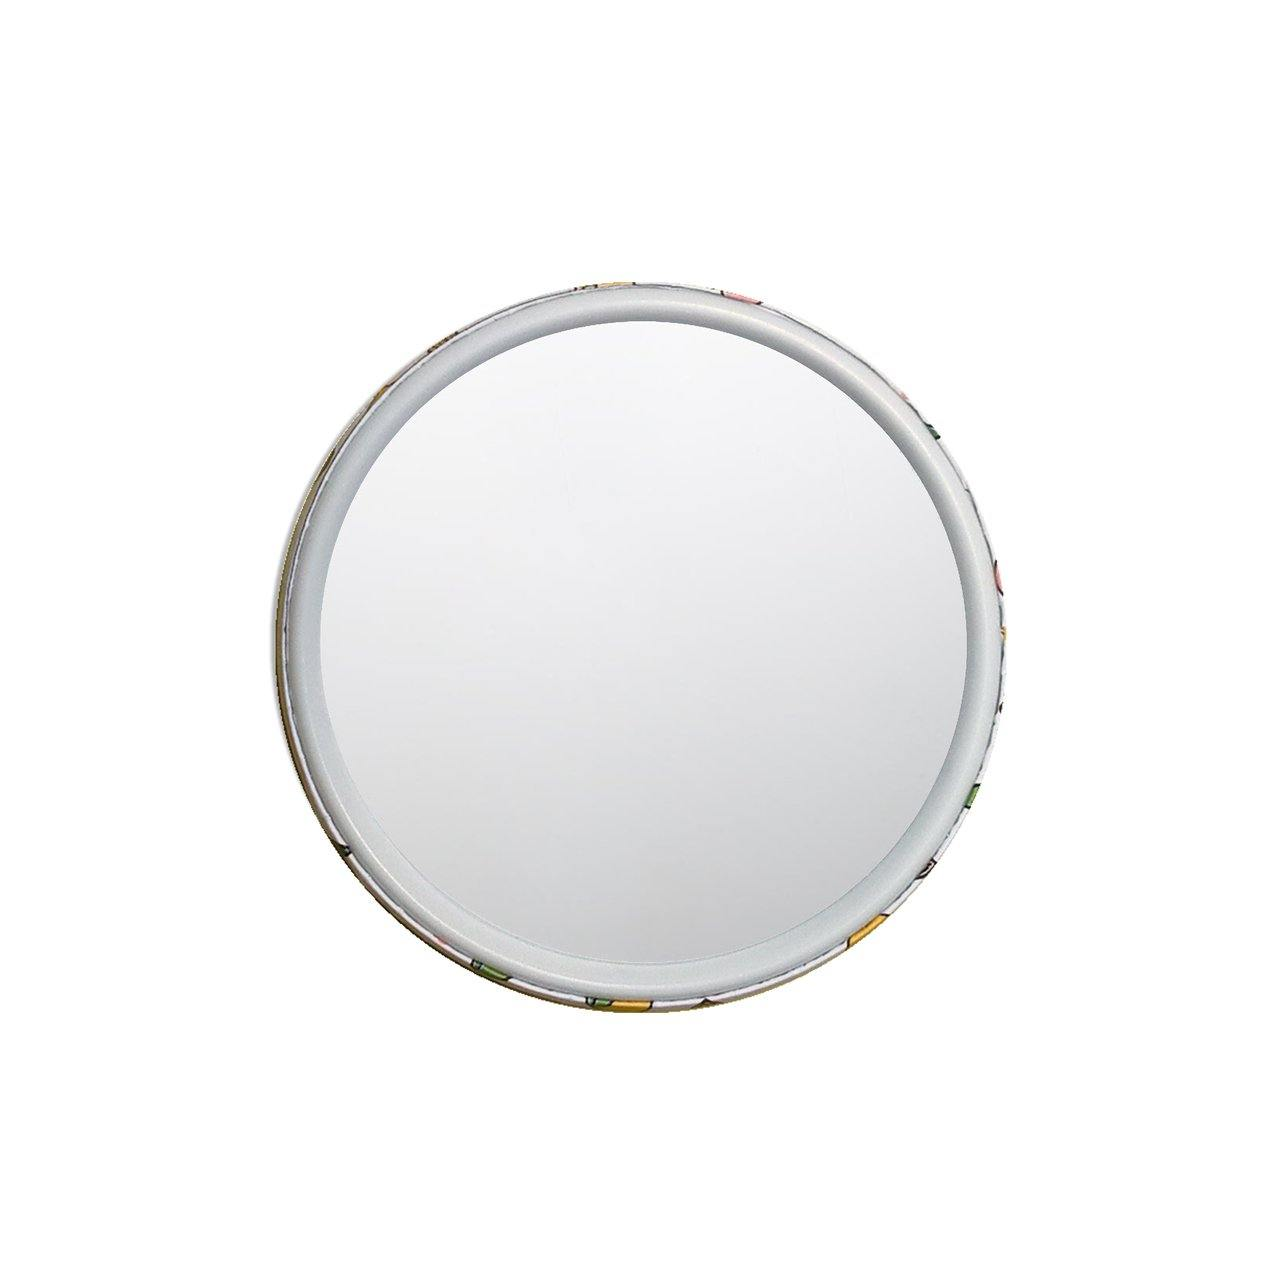 the obc pocket mirror